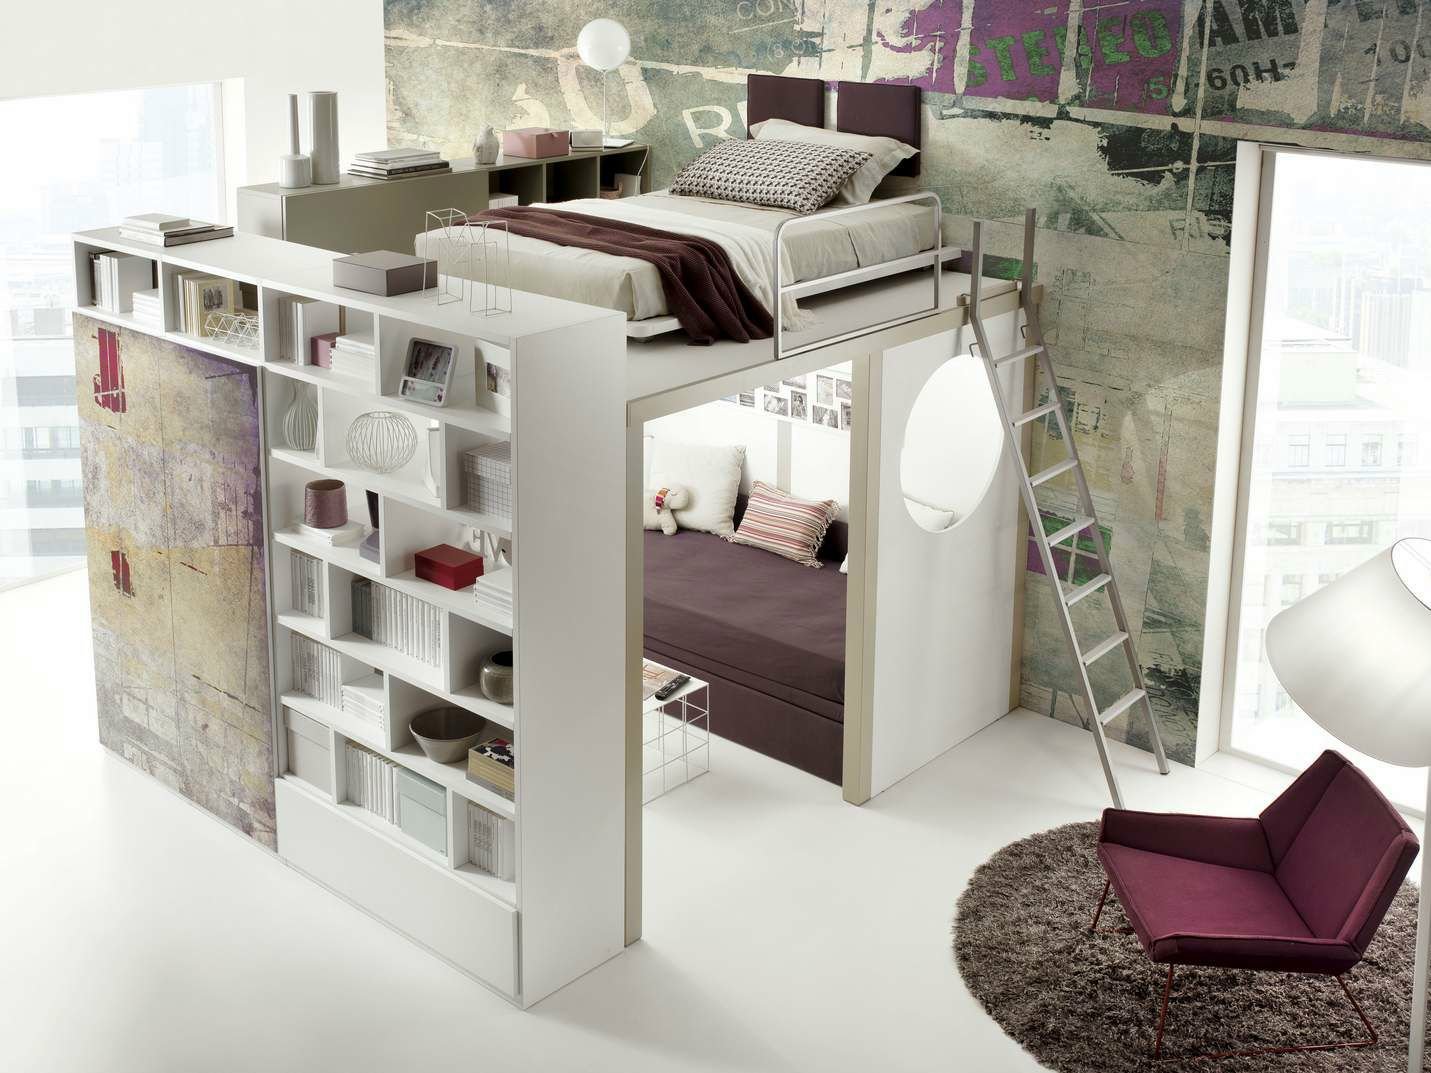 Loft teenage bedroom TIRAMOLLA 910 Tiramolla Collection by TUMIDEI ...